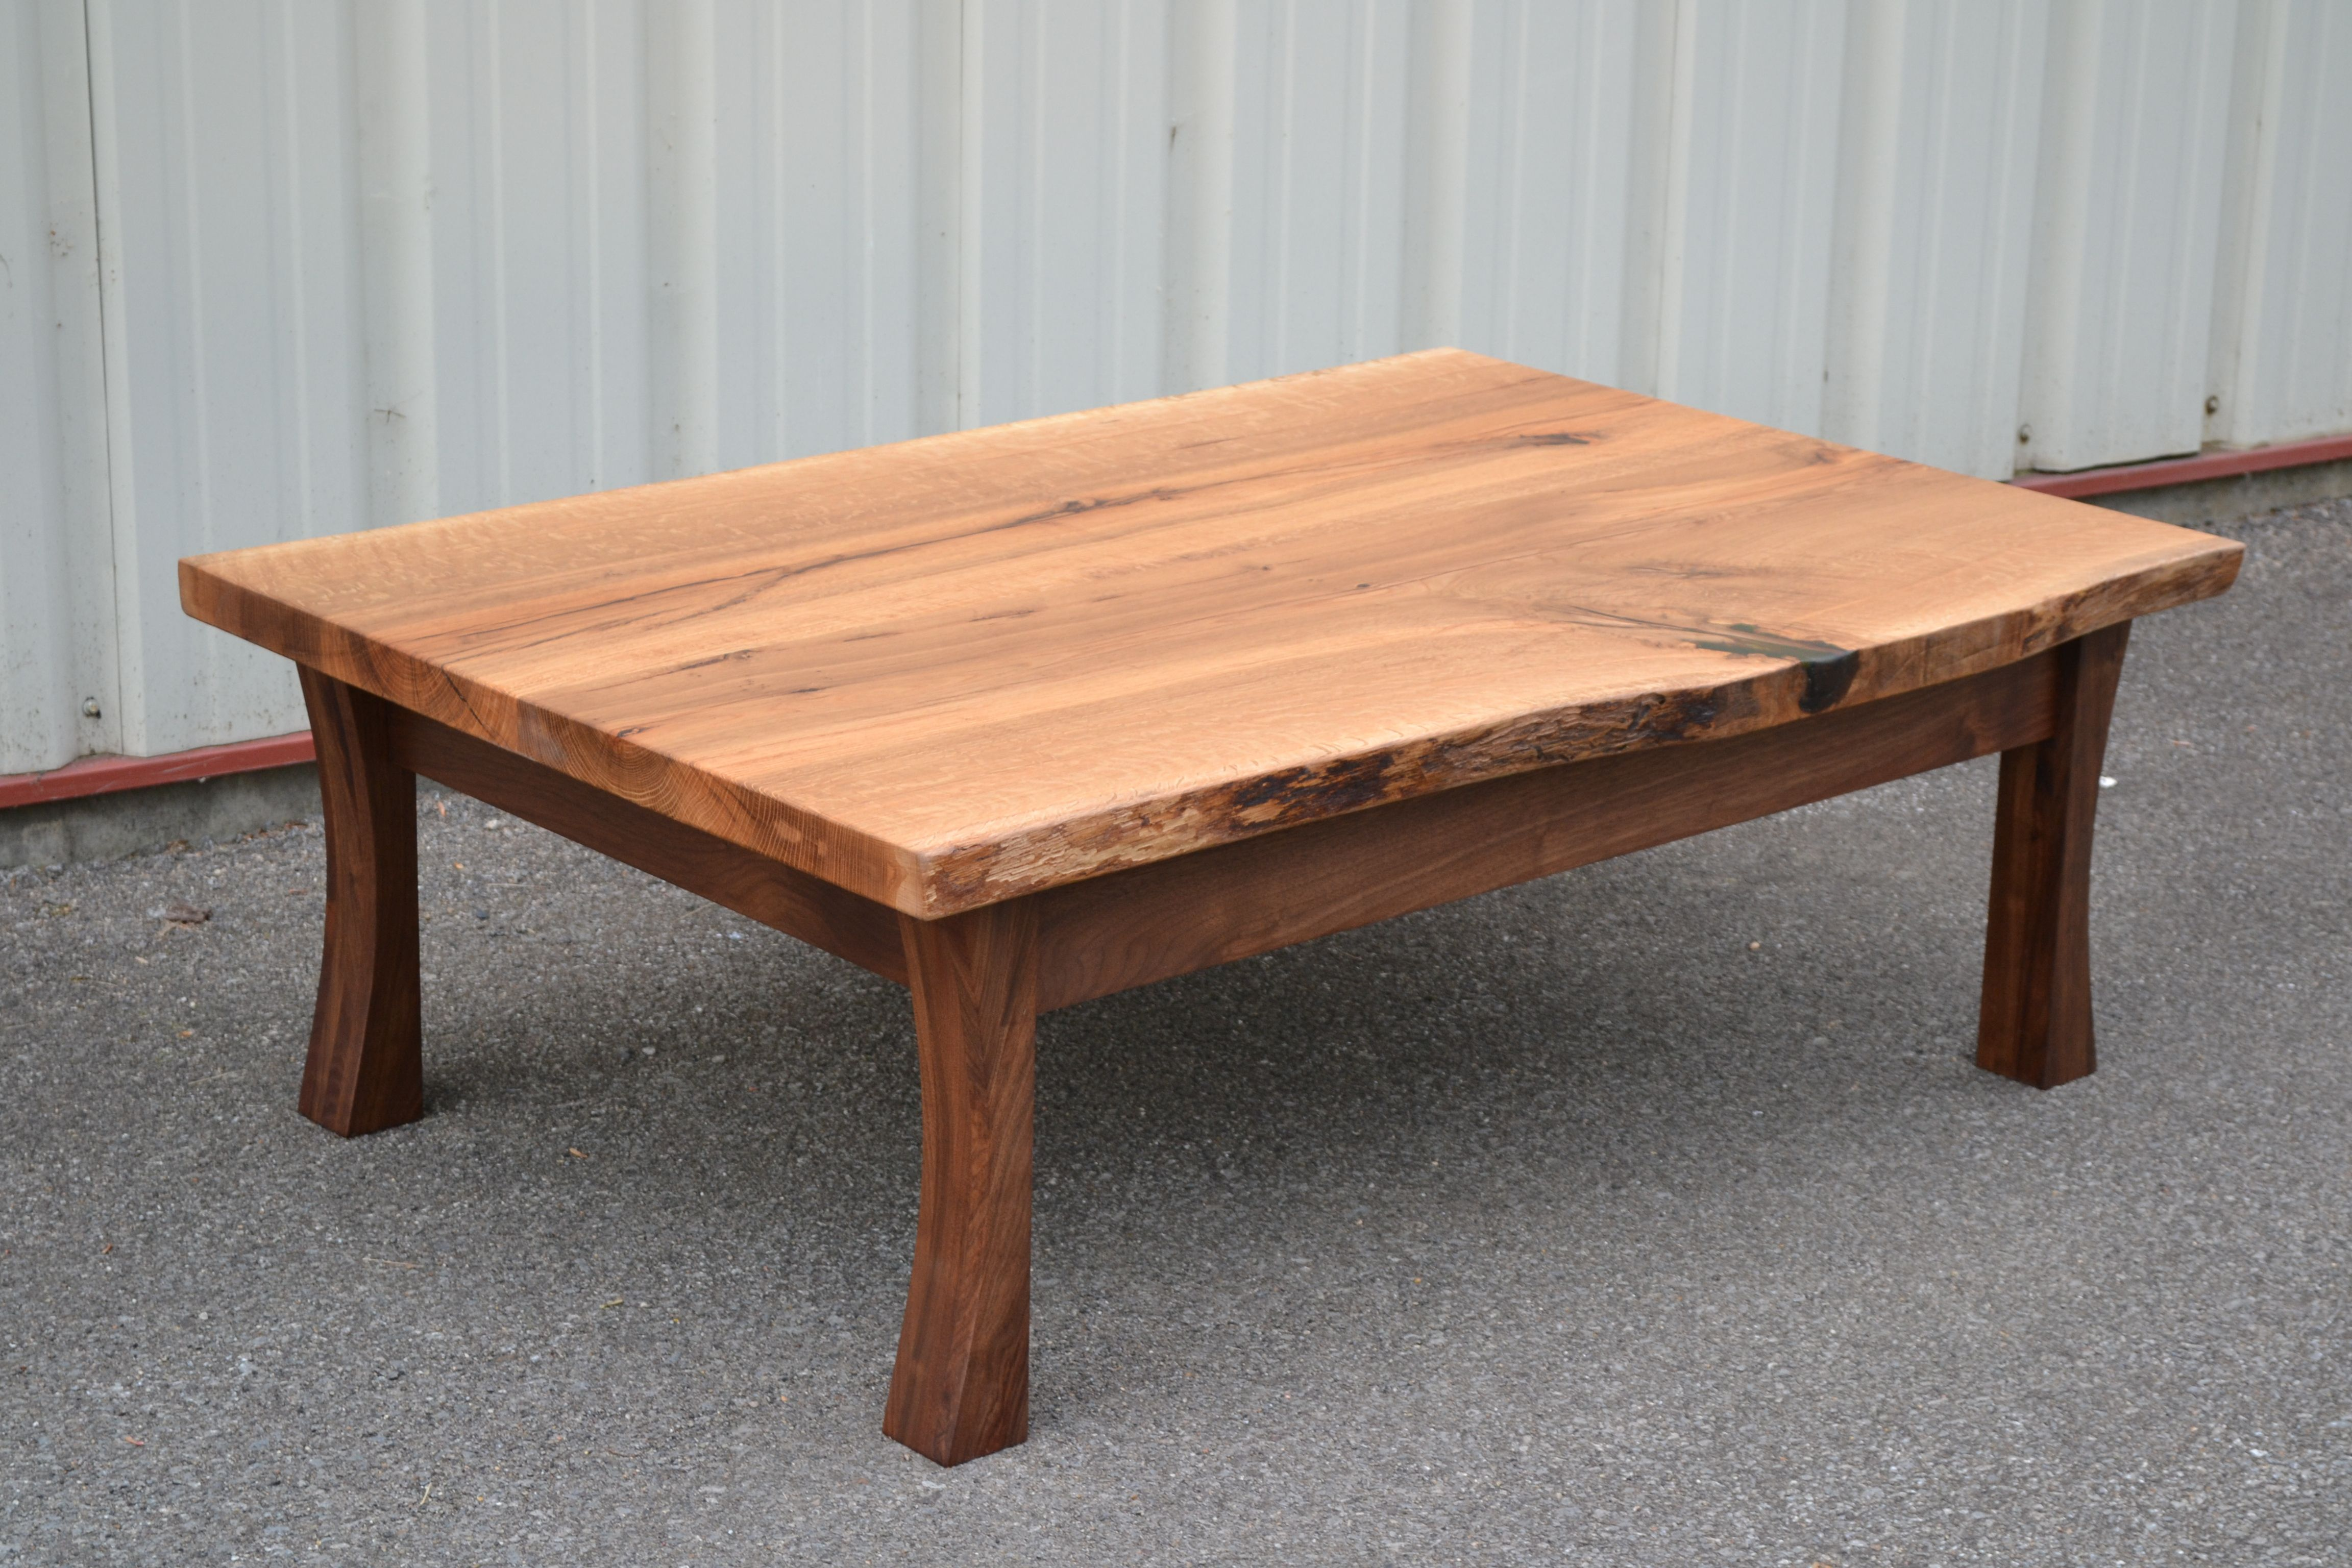 Live Edge White Oak Coffee Table With Curved Walnut Legs Coffee Table White Oak Coffee Table Japanese Coffee Table [ 3072 x 4608 Pixel ]